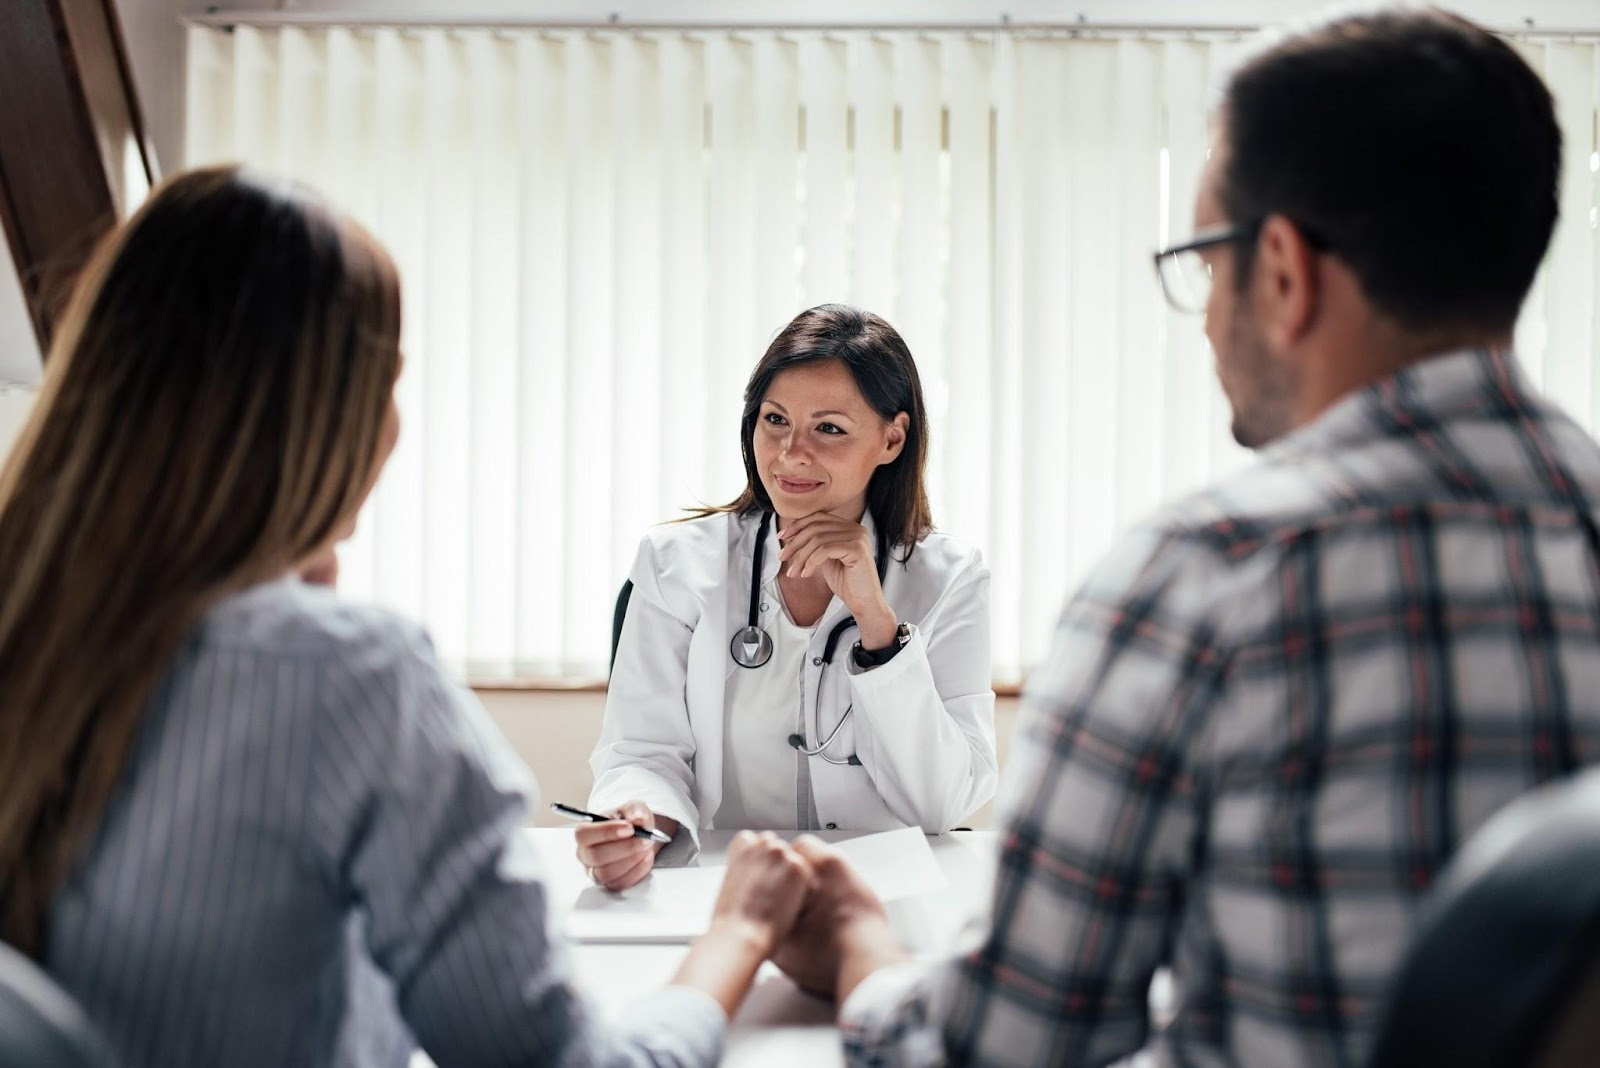 Couple visits a doctor for fertility consultation